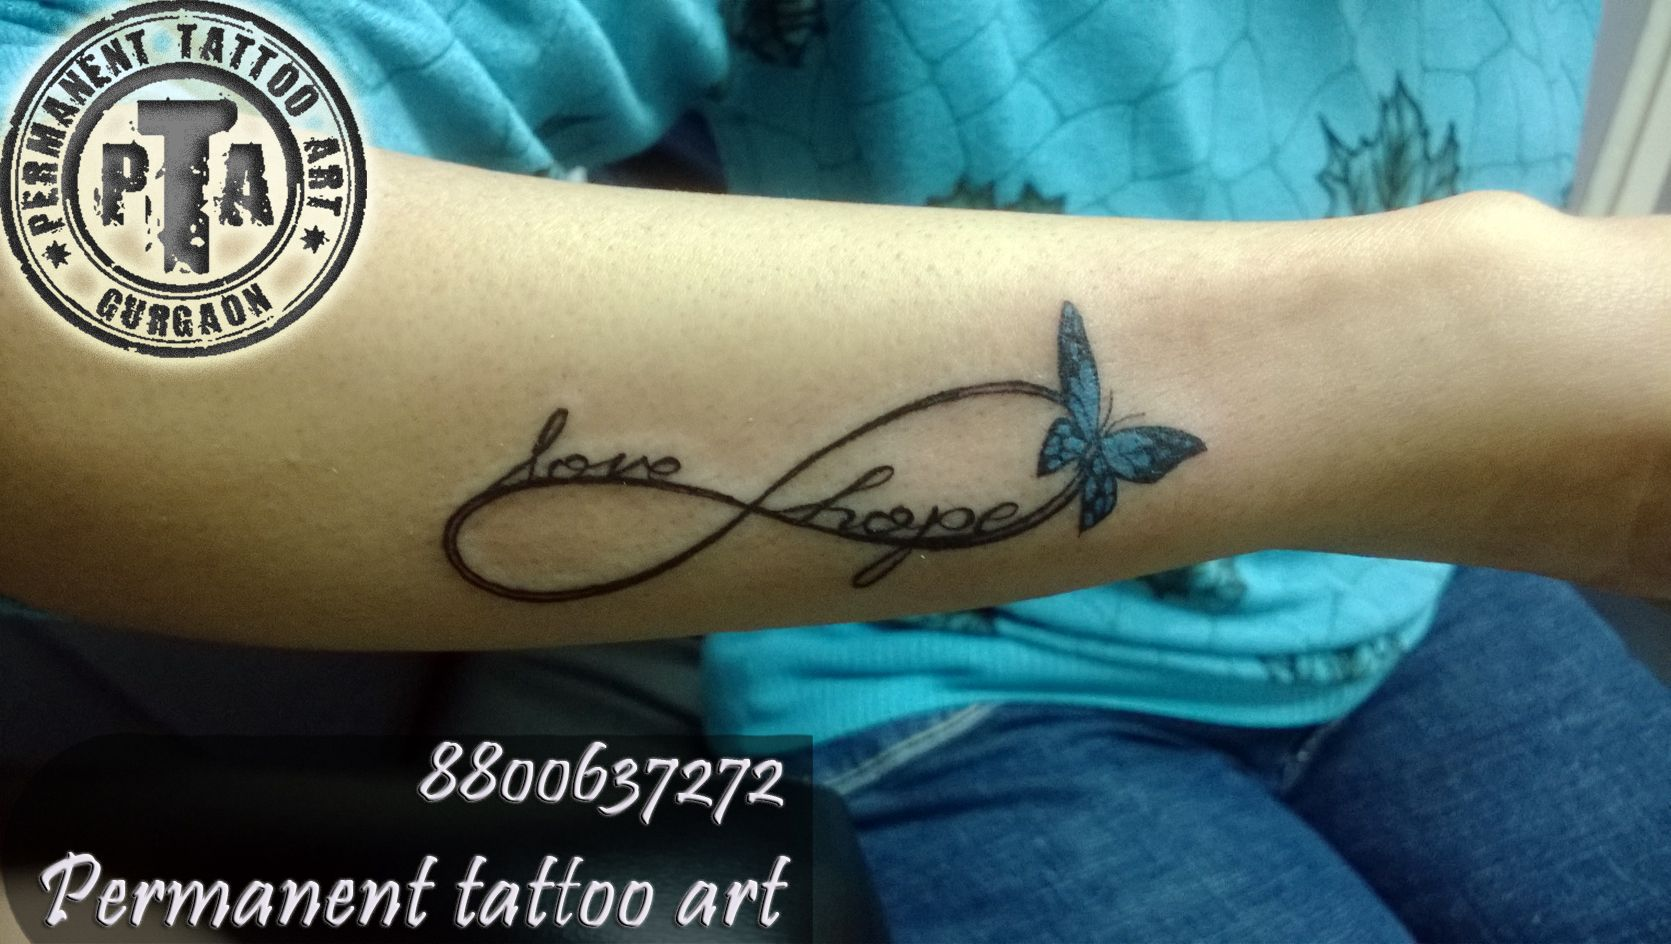 Name In Infinity Symbol With Butterfly At Permanent Tattoo Art Done By Deep Kalra Call 8800637272 Tattoos Name Tattoo Designs Latest Tattoo Design